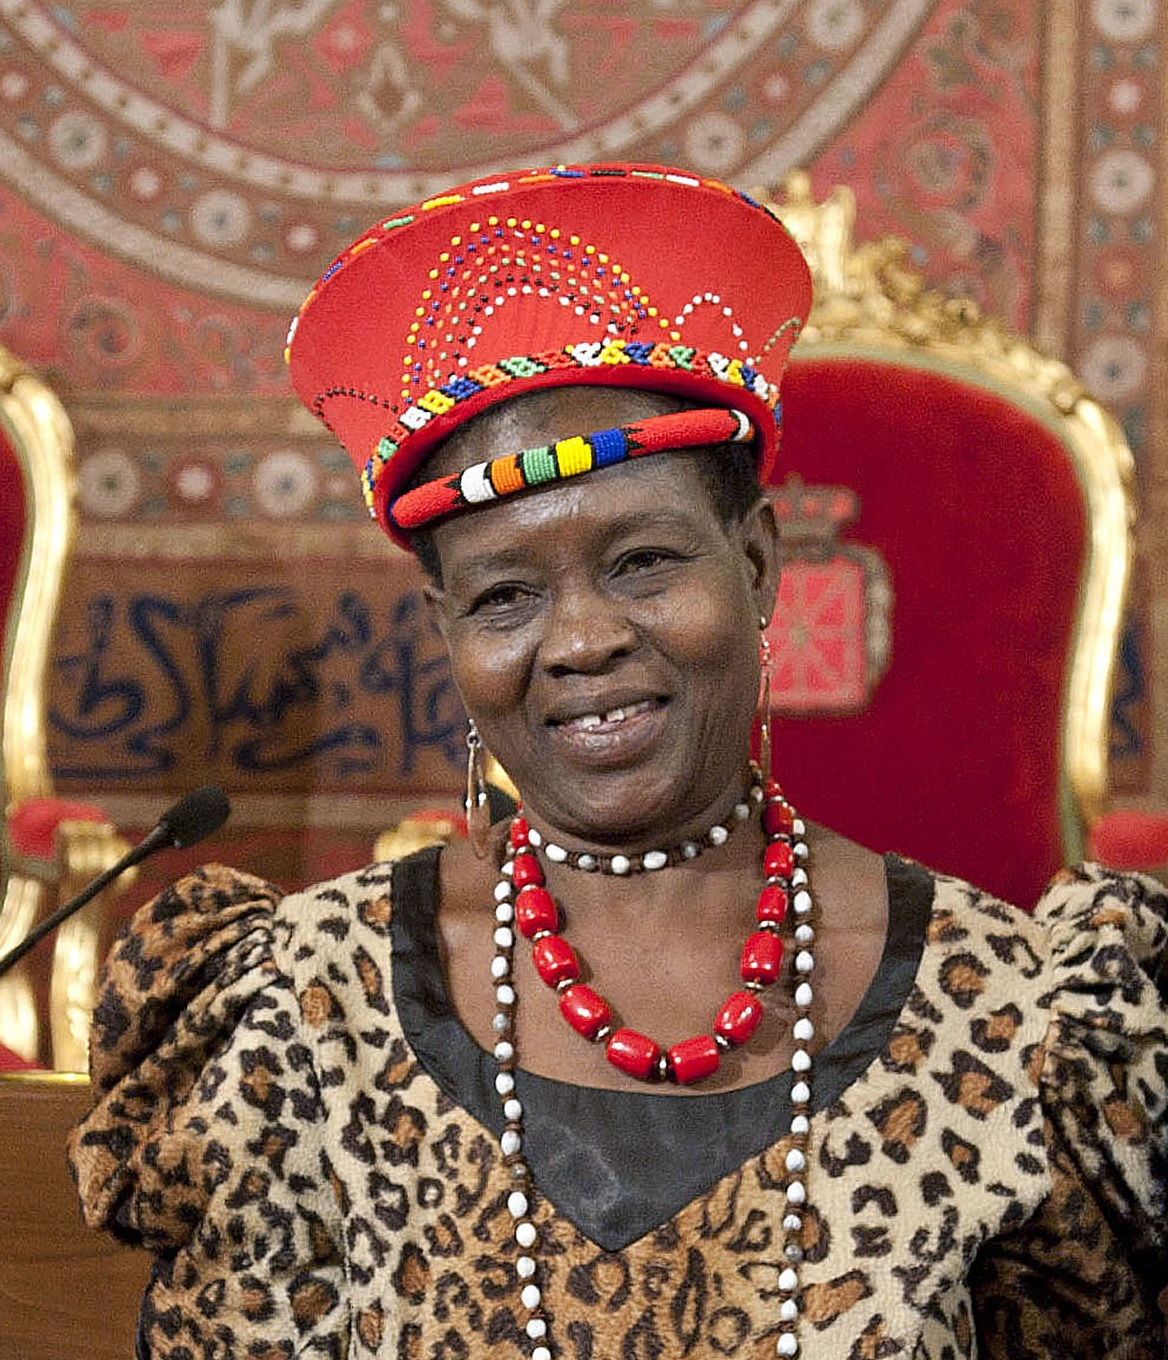 paramount chief in Malawi